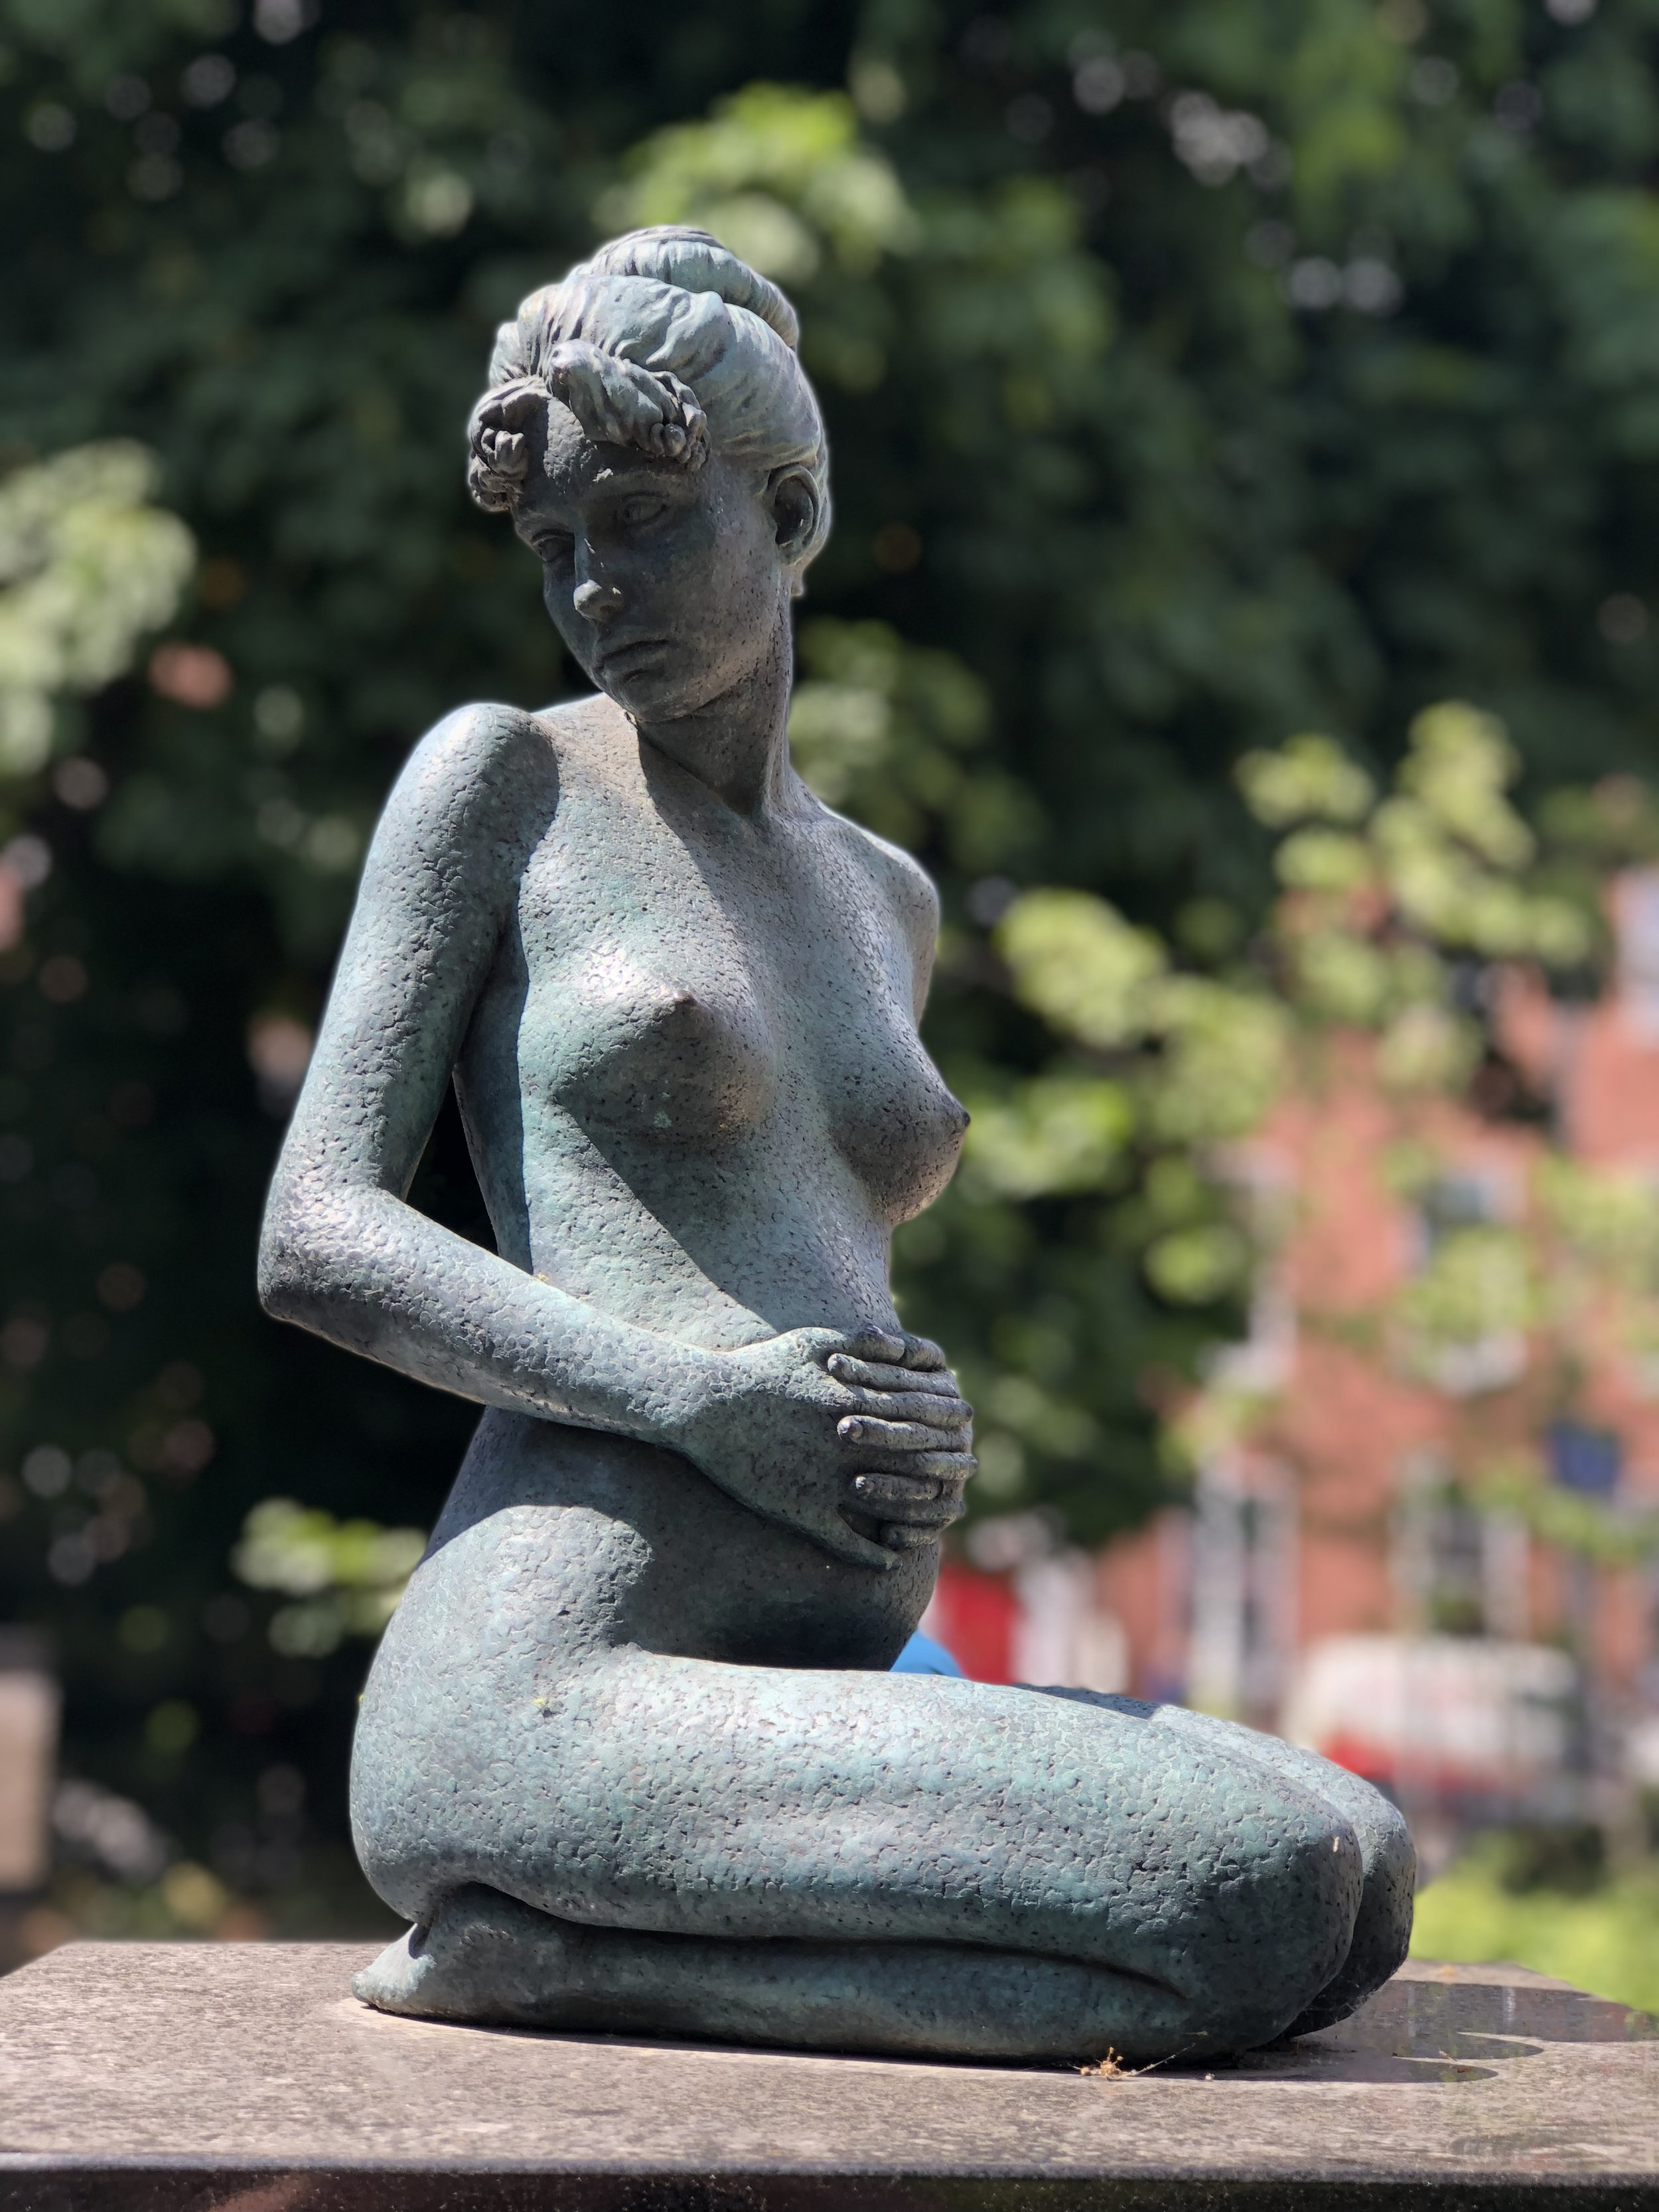 Another statue in Merrion Square